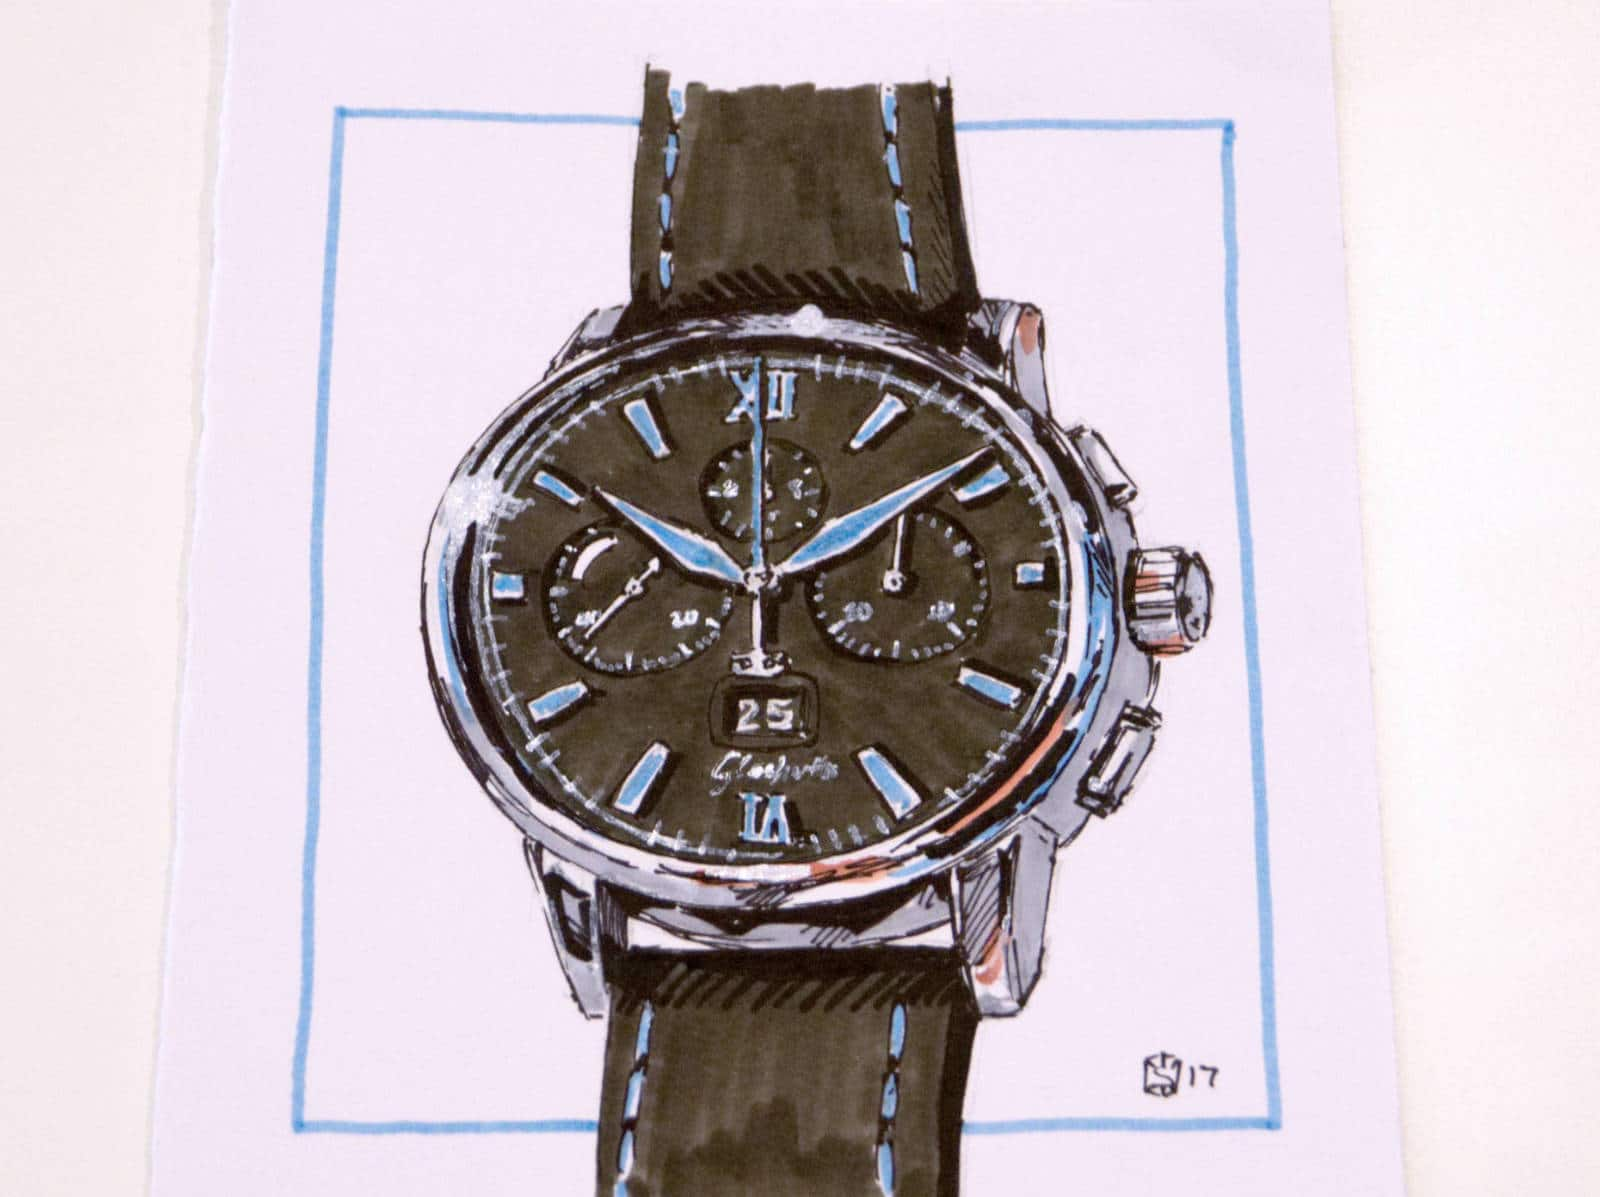 Drawing of a new Glashütte Original watch during Baselworld 2017